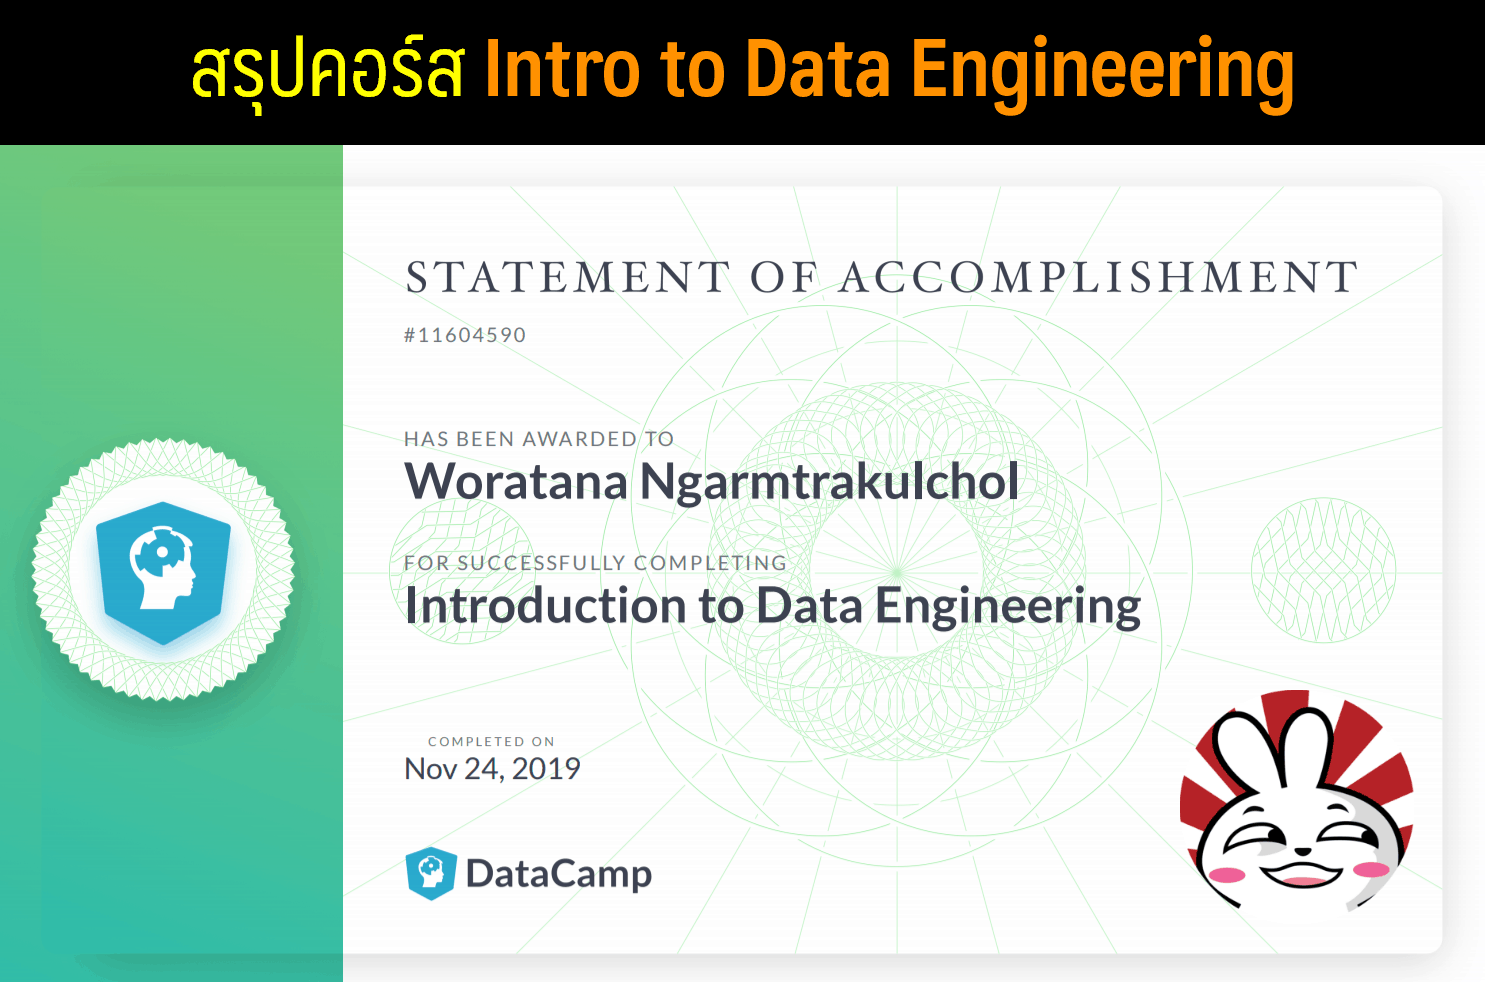 data engineer intro course